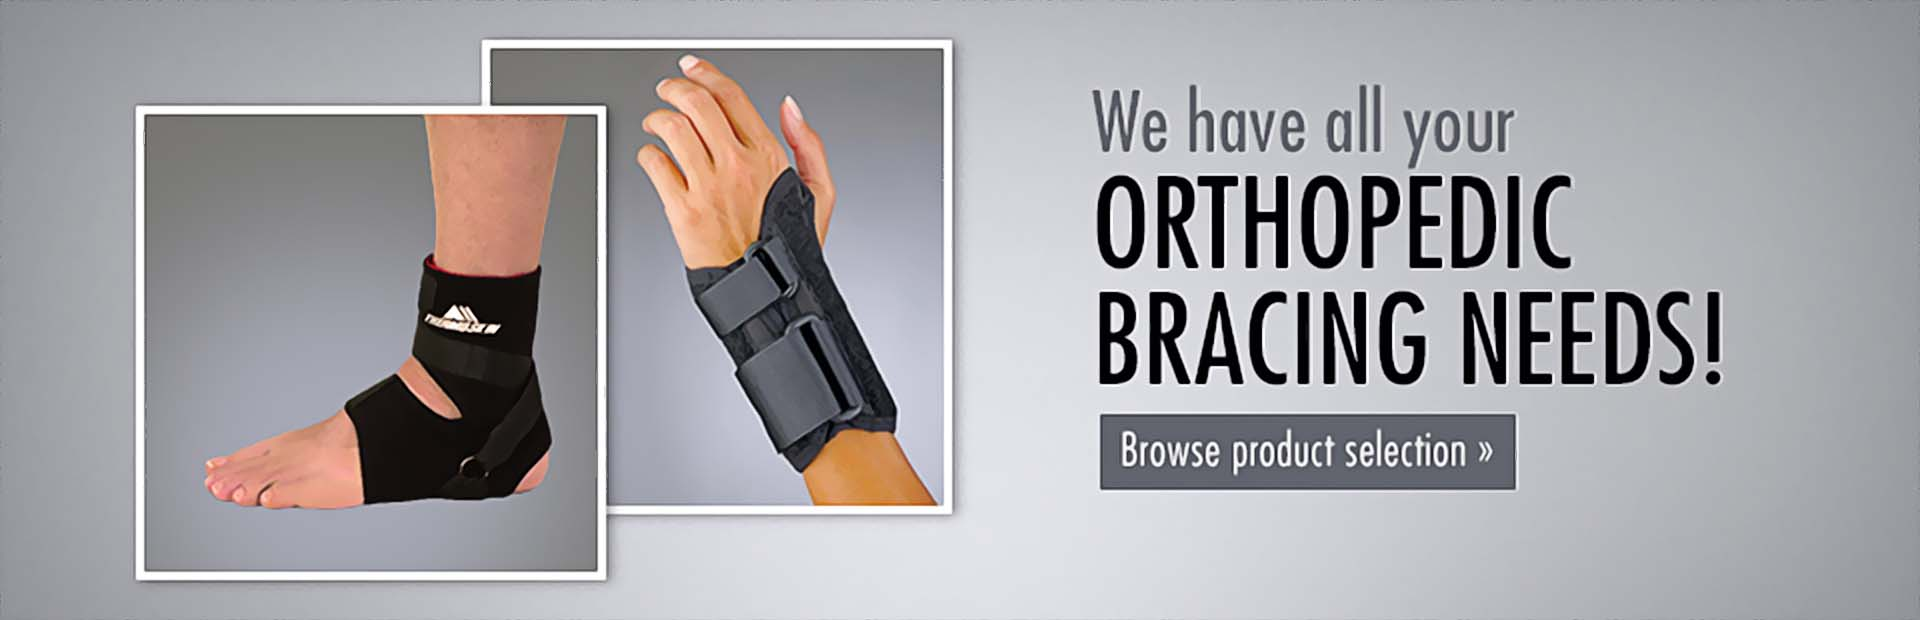 We have all your orthopedic bracing needs! Click here to browse our selection.